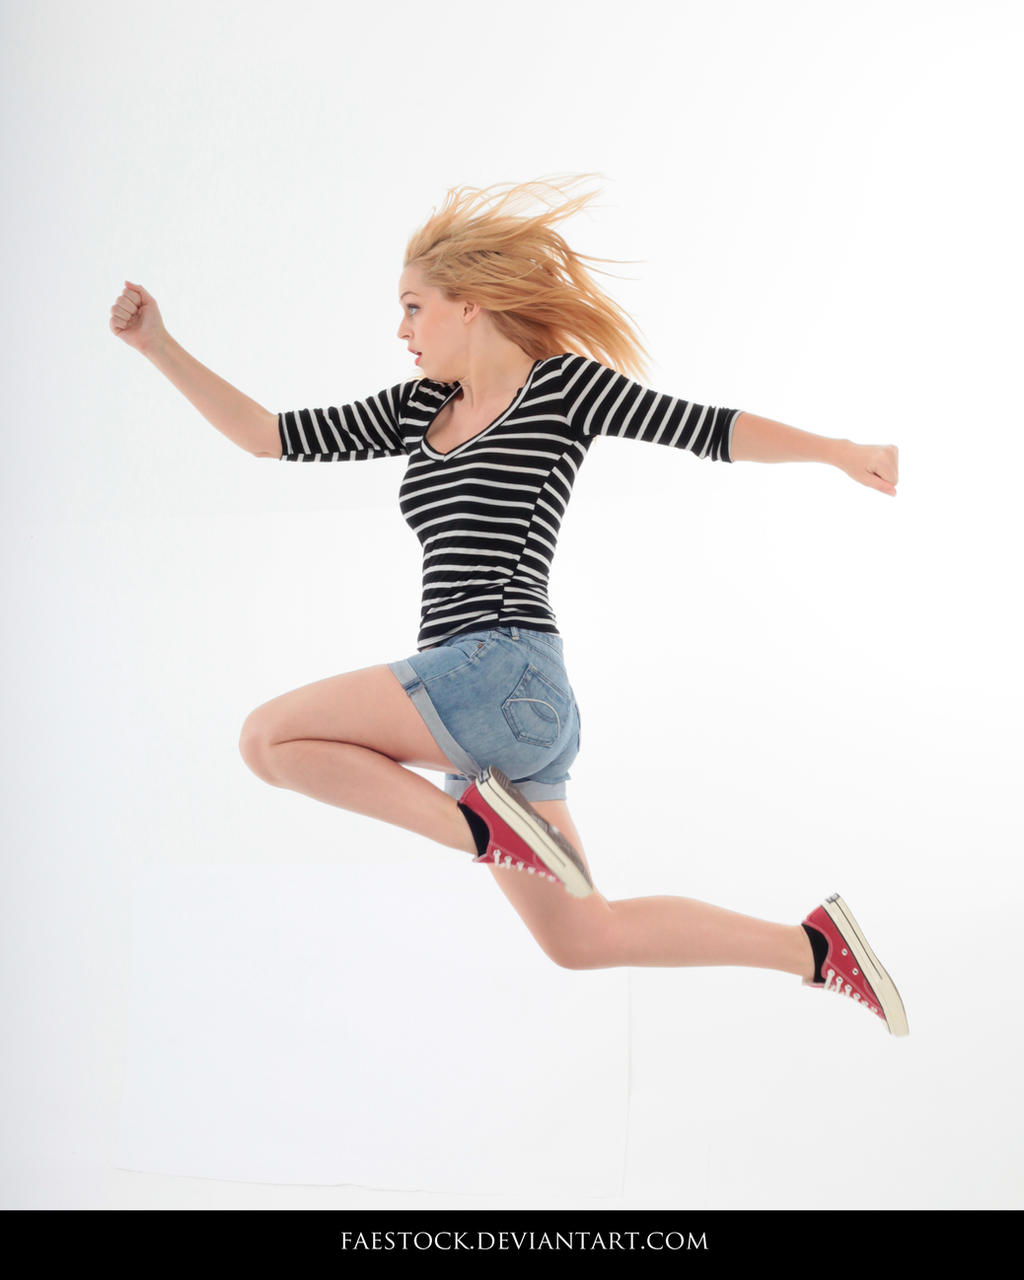 Jumping - Action Pose Reference 5